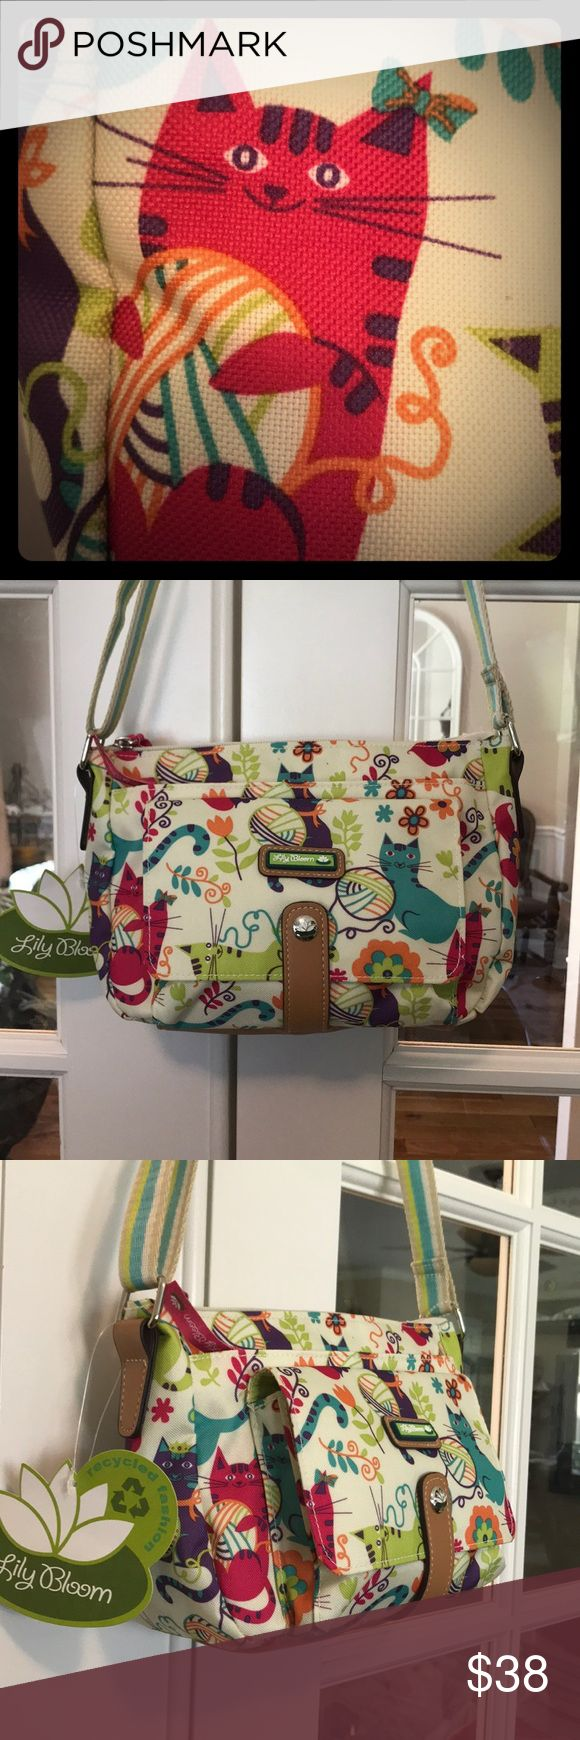 """🆕 Lily Bloom Feline Fun Crossbody This LilyBloom Kitty Crossbody has four, fully line large pockets!  The main compartment has one interior zippered pocket with a large slip pocket on the rear and a large zippered pocket in front. There is also another large front pocket with a flap that snaps close.  All zippers have the """"Lily Bloom"""" tag.  The bag is made of Lily Bloom signature fabric KARMA BLOOM made of recycled plastic bottles!   Roughly 10""""L x 6.5""""H x 5"""" including the front pocket. 💞…"""